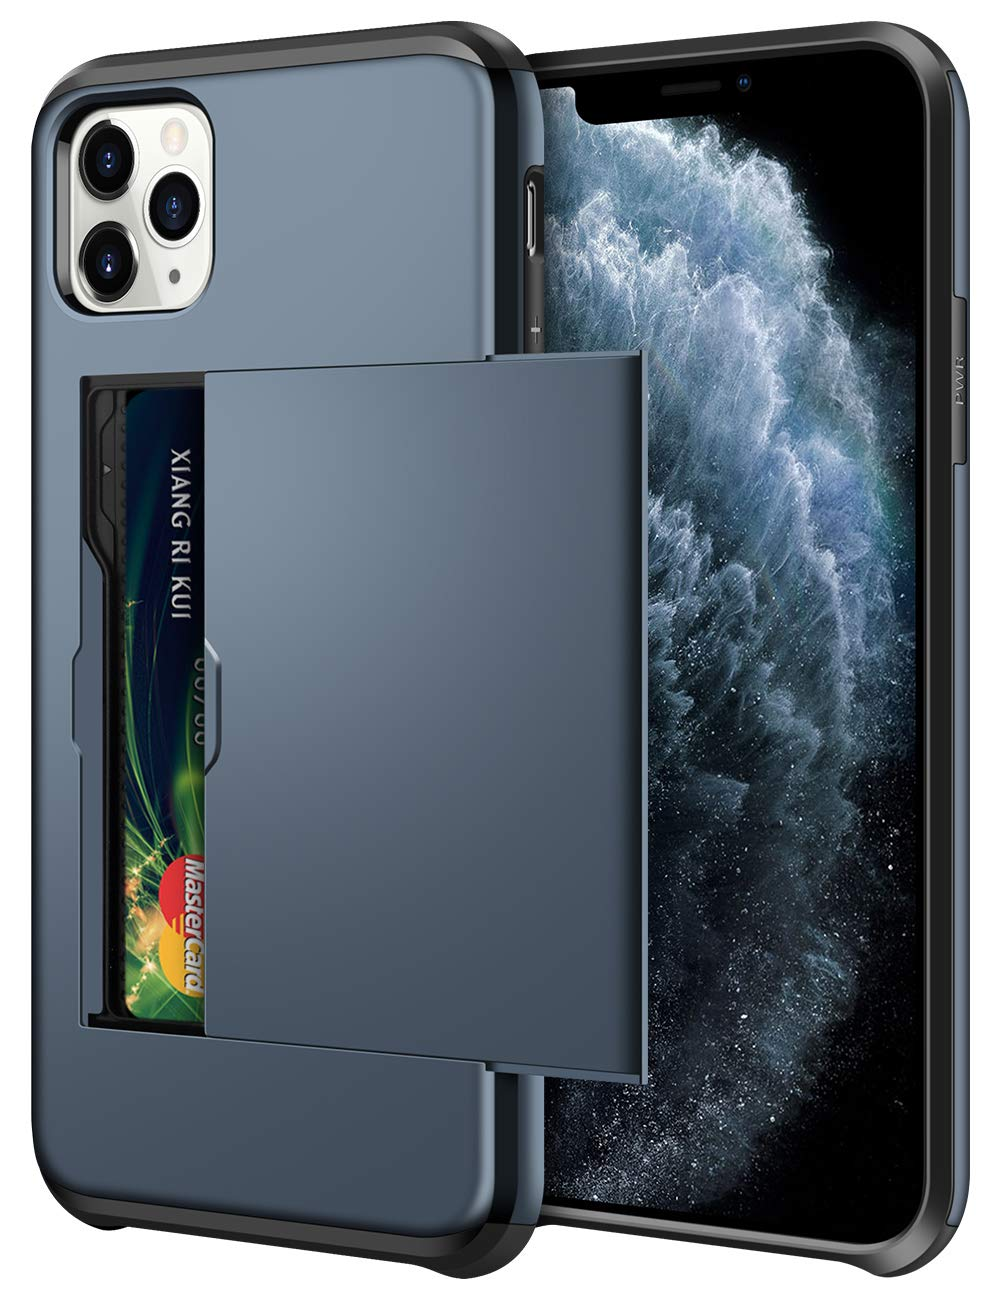 SAMONPOW Wallet Case for iPhone 11 Pro Max Case with Card Holder Dual Layer Hybrid Shell Heavy Duty Shockproof Anti Scratch Soft Rubber Bumper Cover Case for iPhone 11 Pro Max 6.5 inch Dark Blue